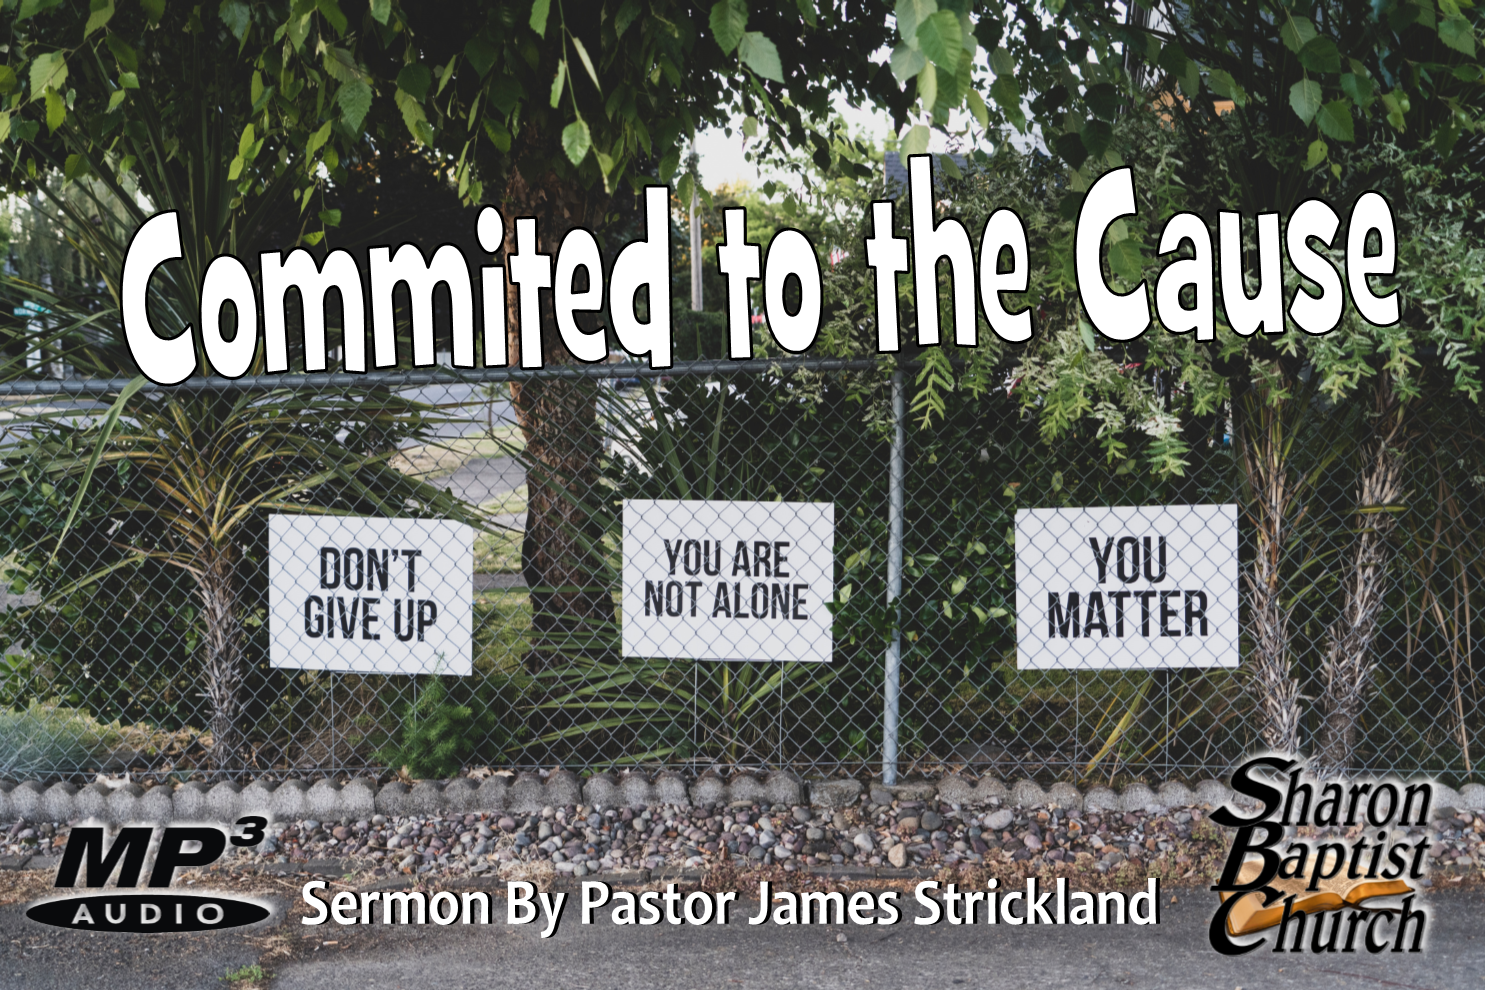 Committed to the Cause 9-8-19 SERMON Audio MP3